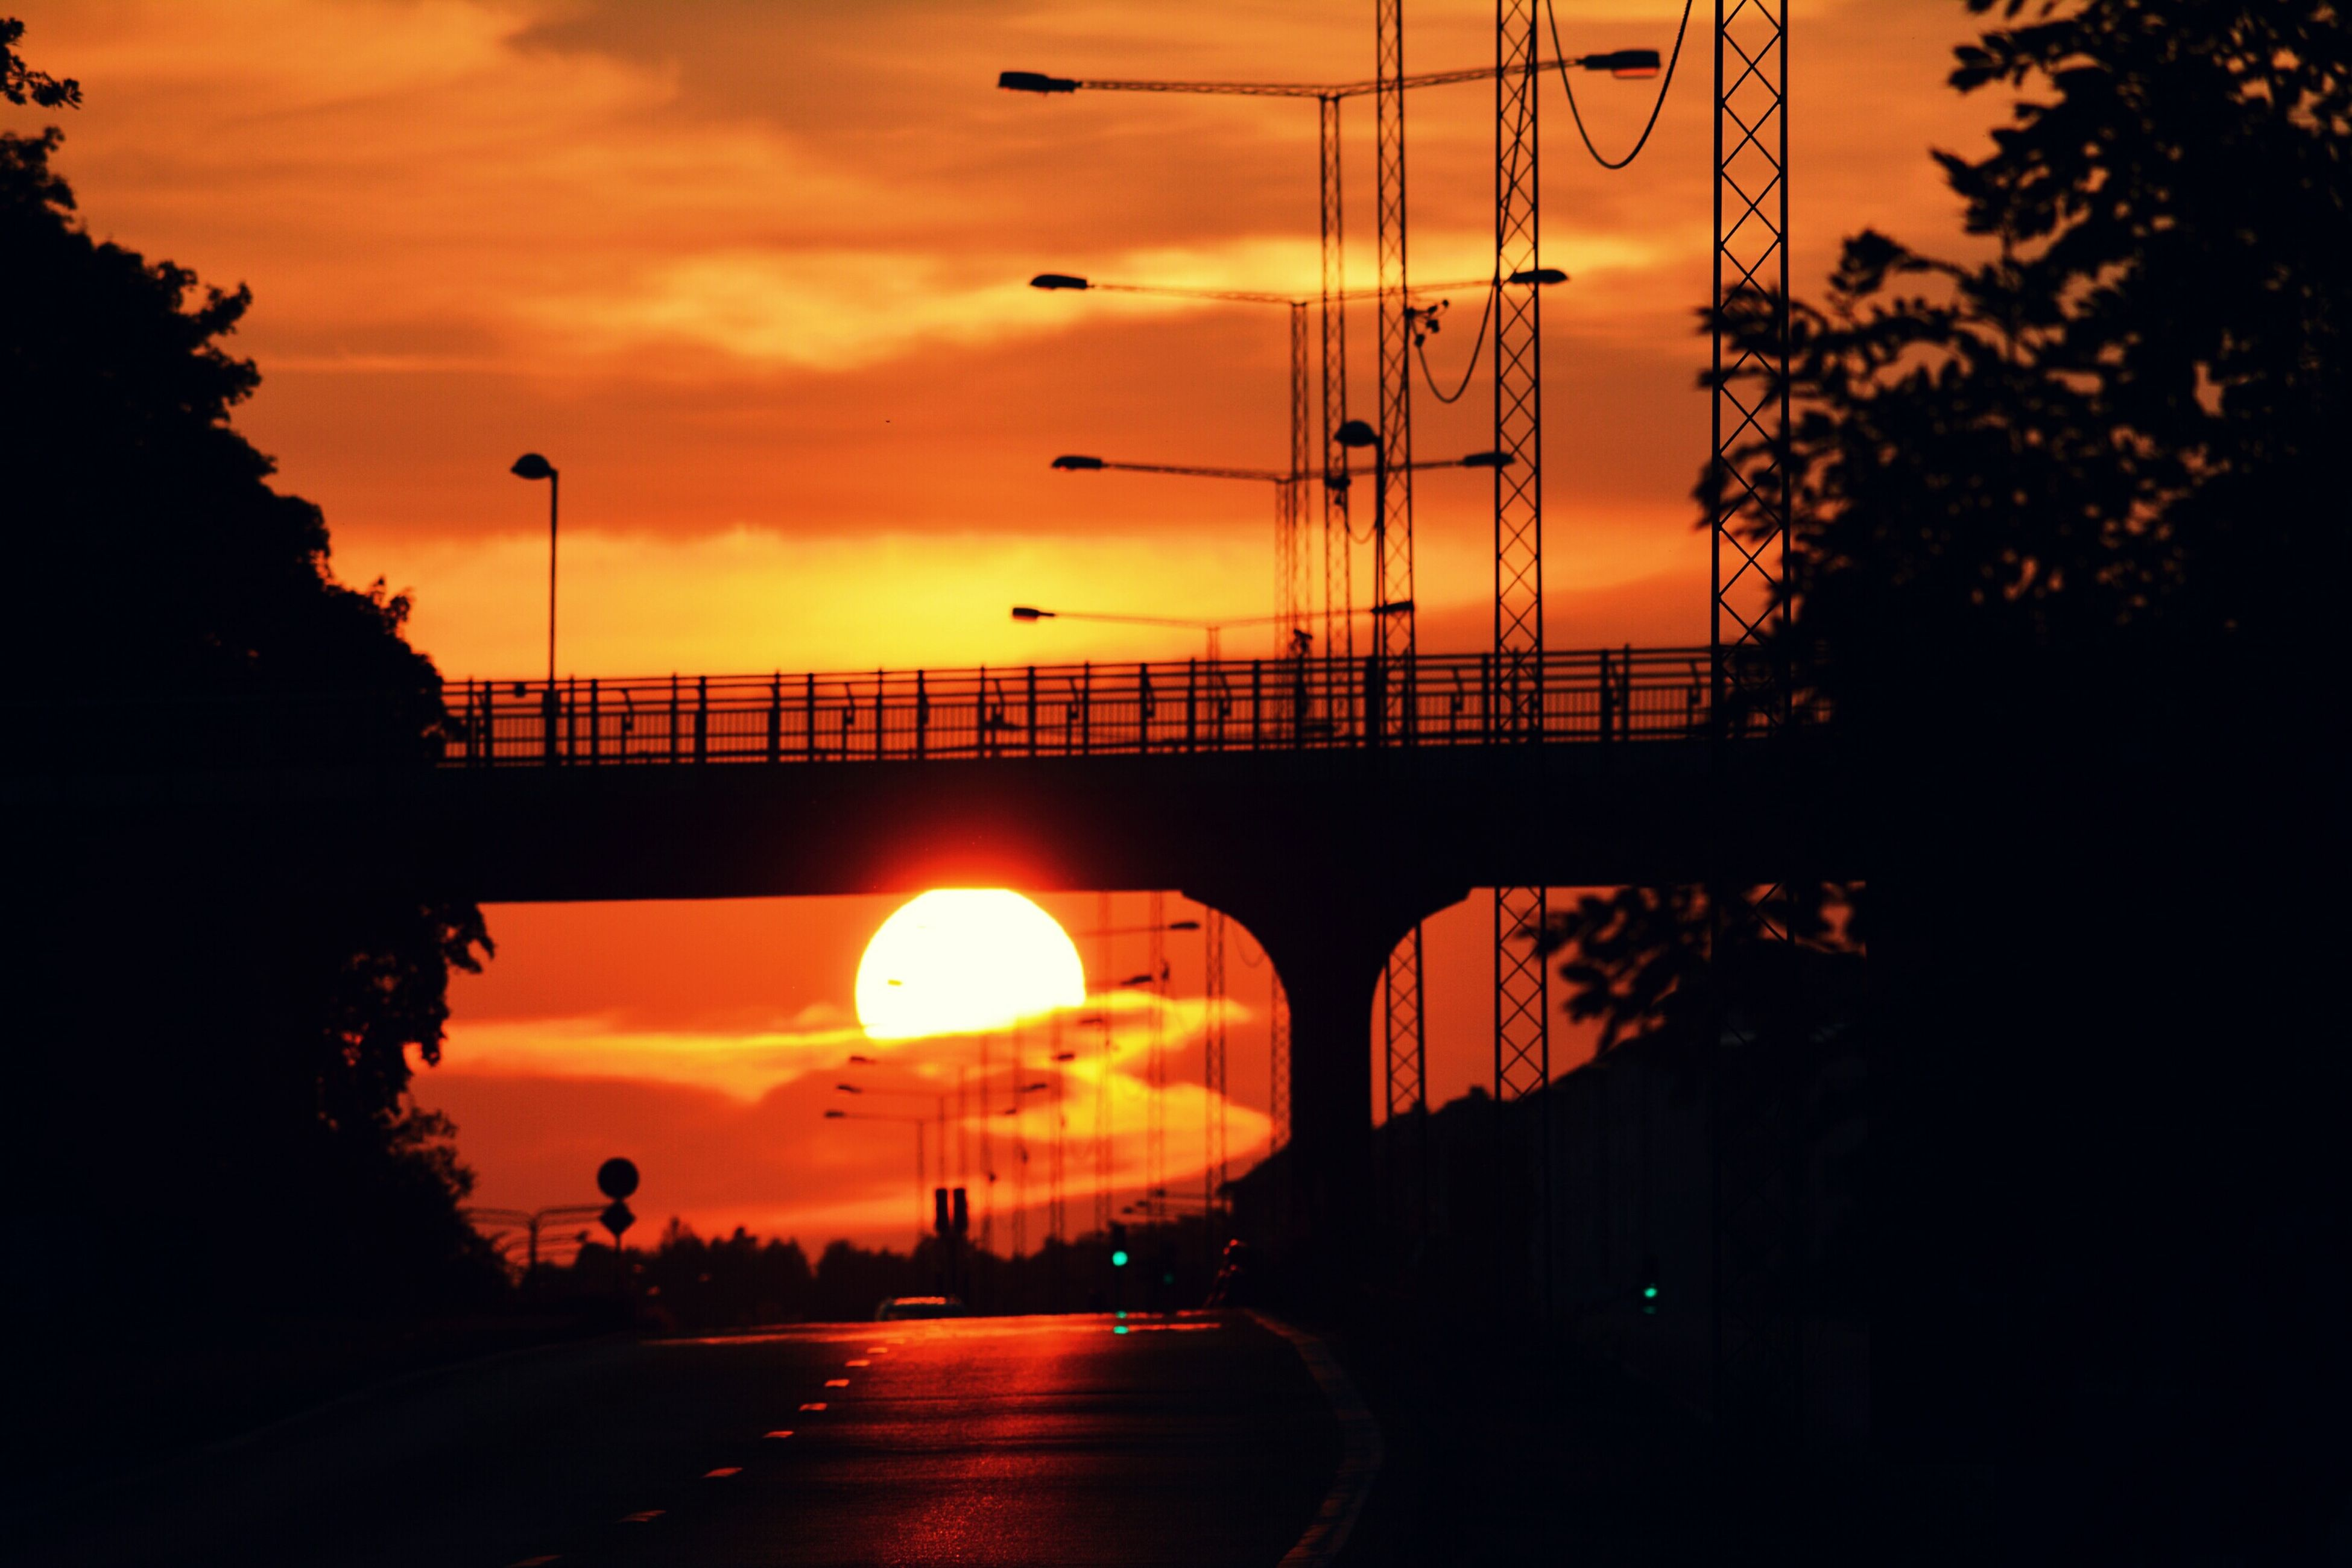 sunset, silhouette, orange color, transportation, sky, car, tree, street light, road, cloud - sky, land vehicle, connection, mode of transport, sun, the way forward, nature, street, power line, electricity pylon, beauty in nature